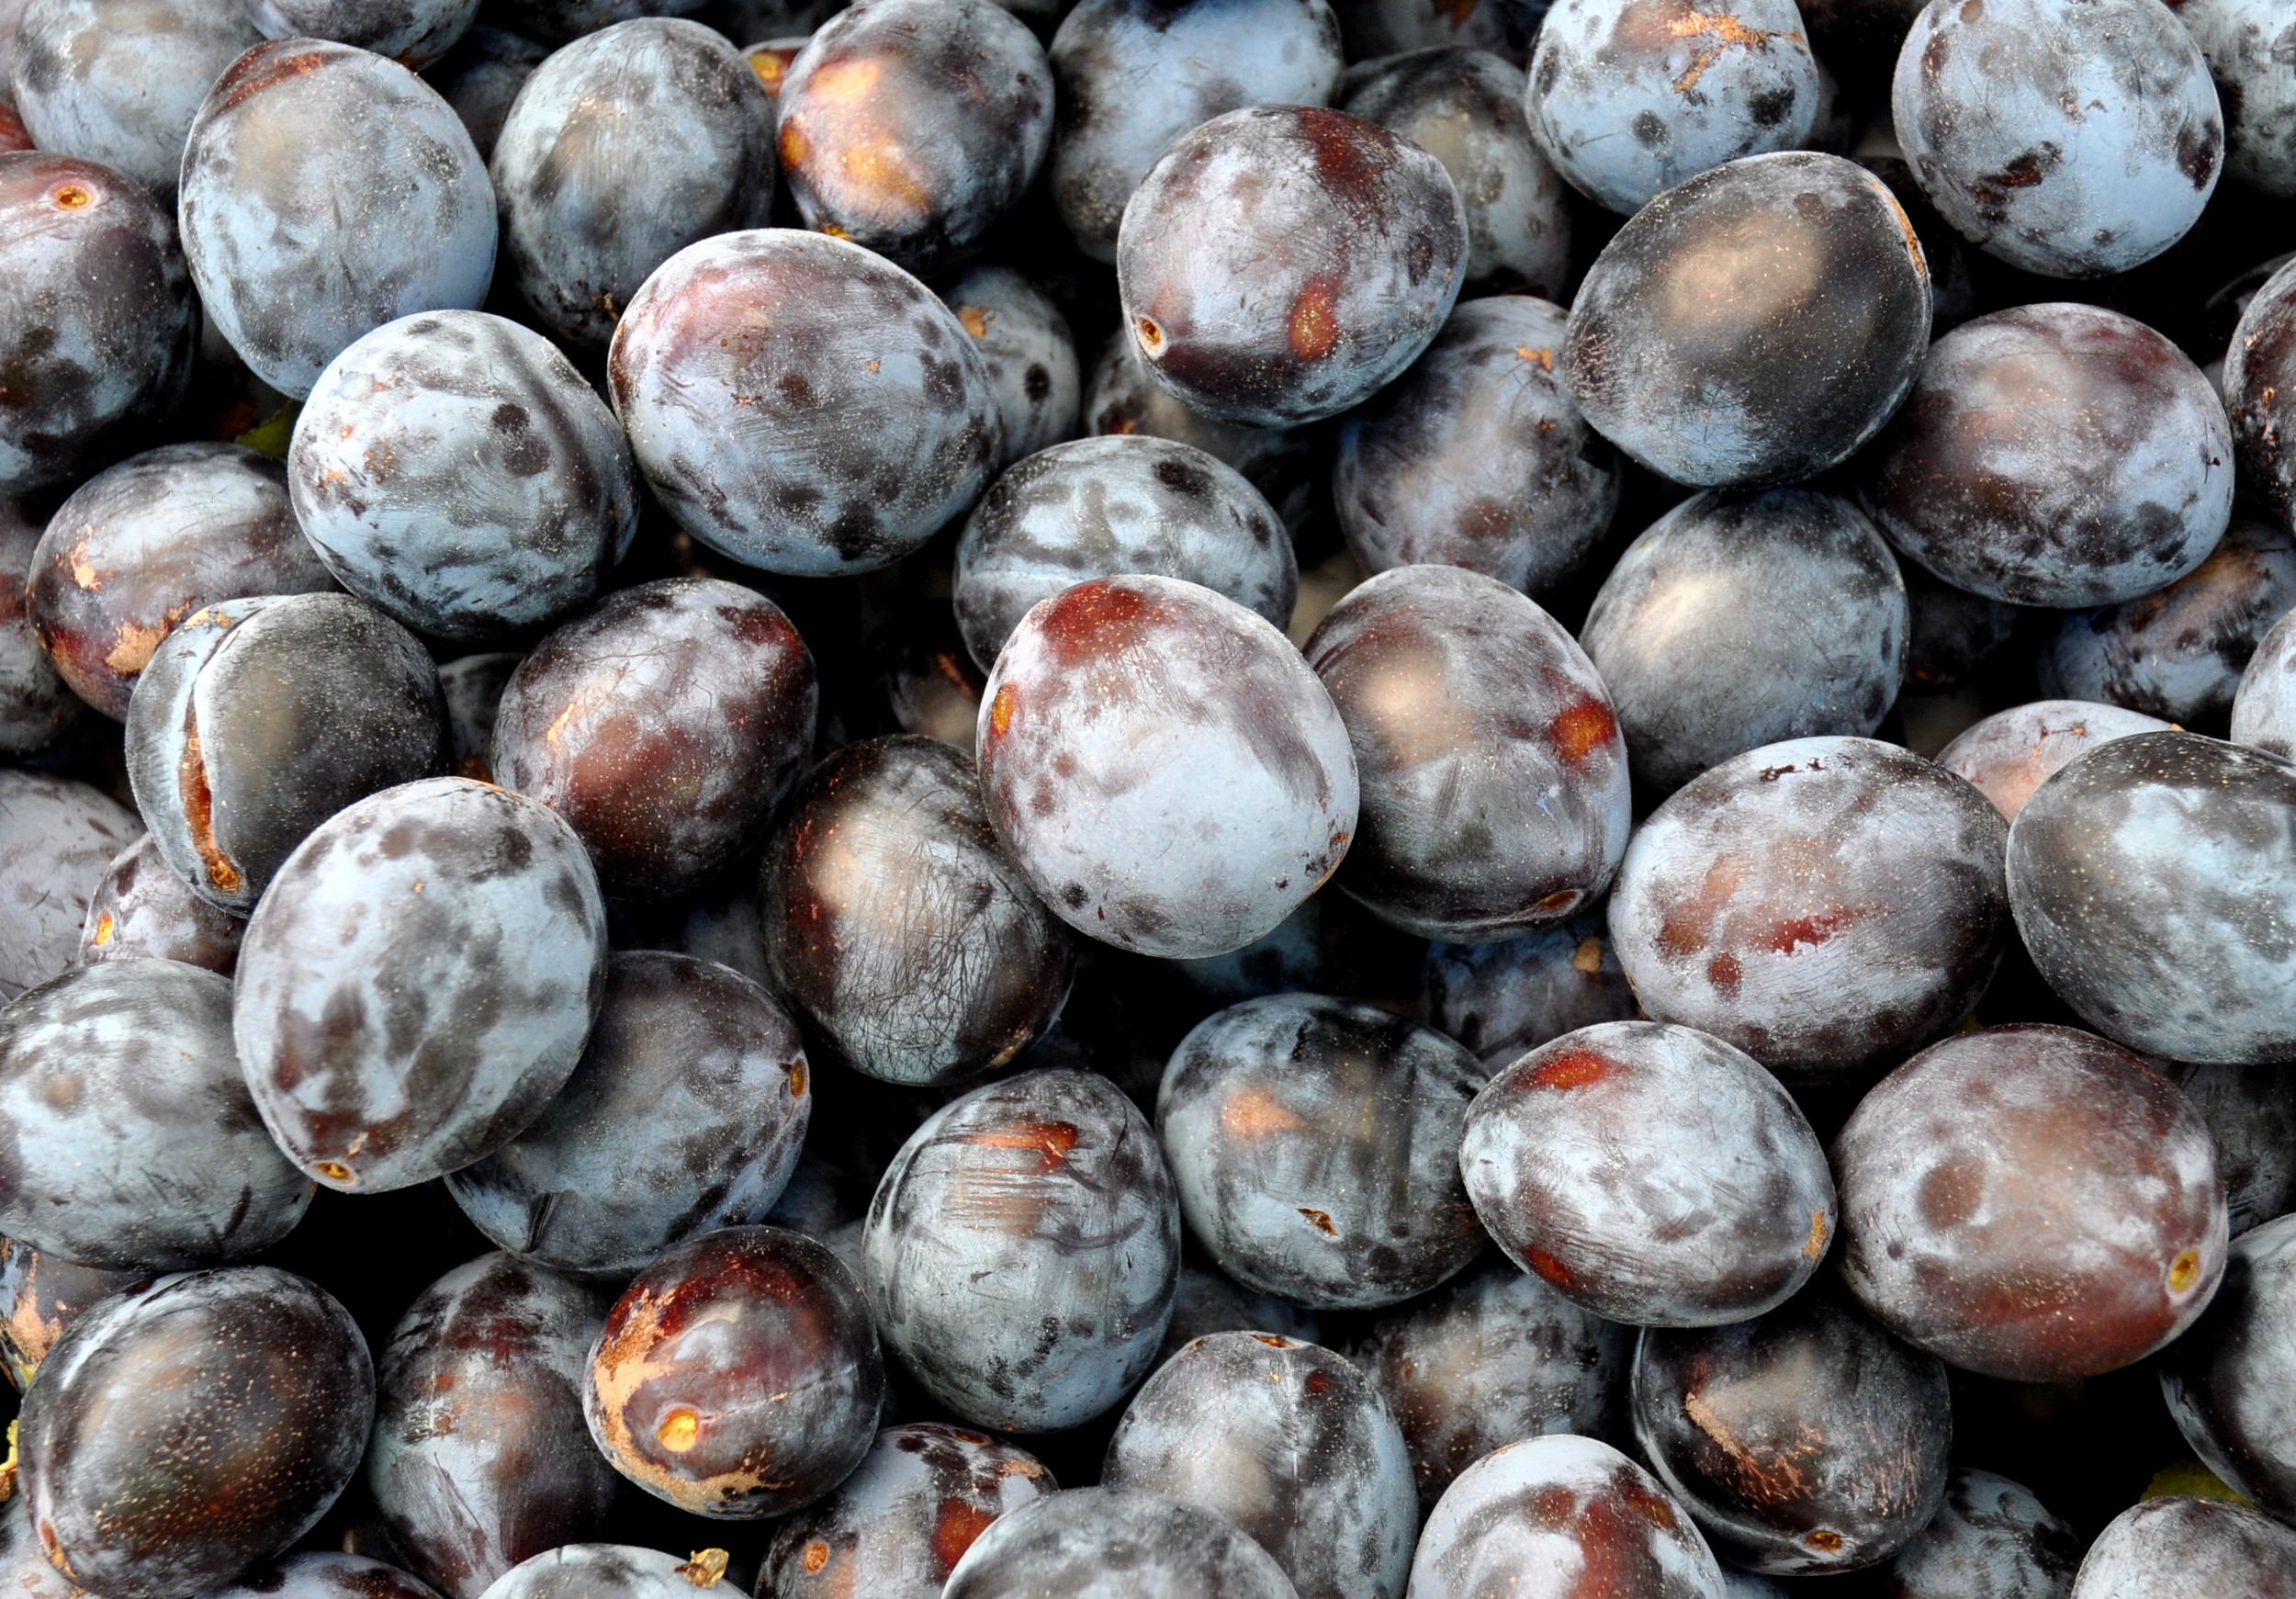 Italian prunes from Booth Canyon Orchard at Ballard Farmers Market. Copyright Zachary D. Lyons.